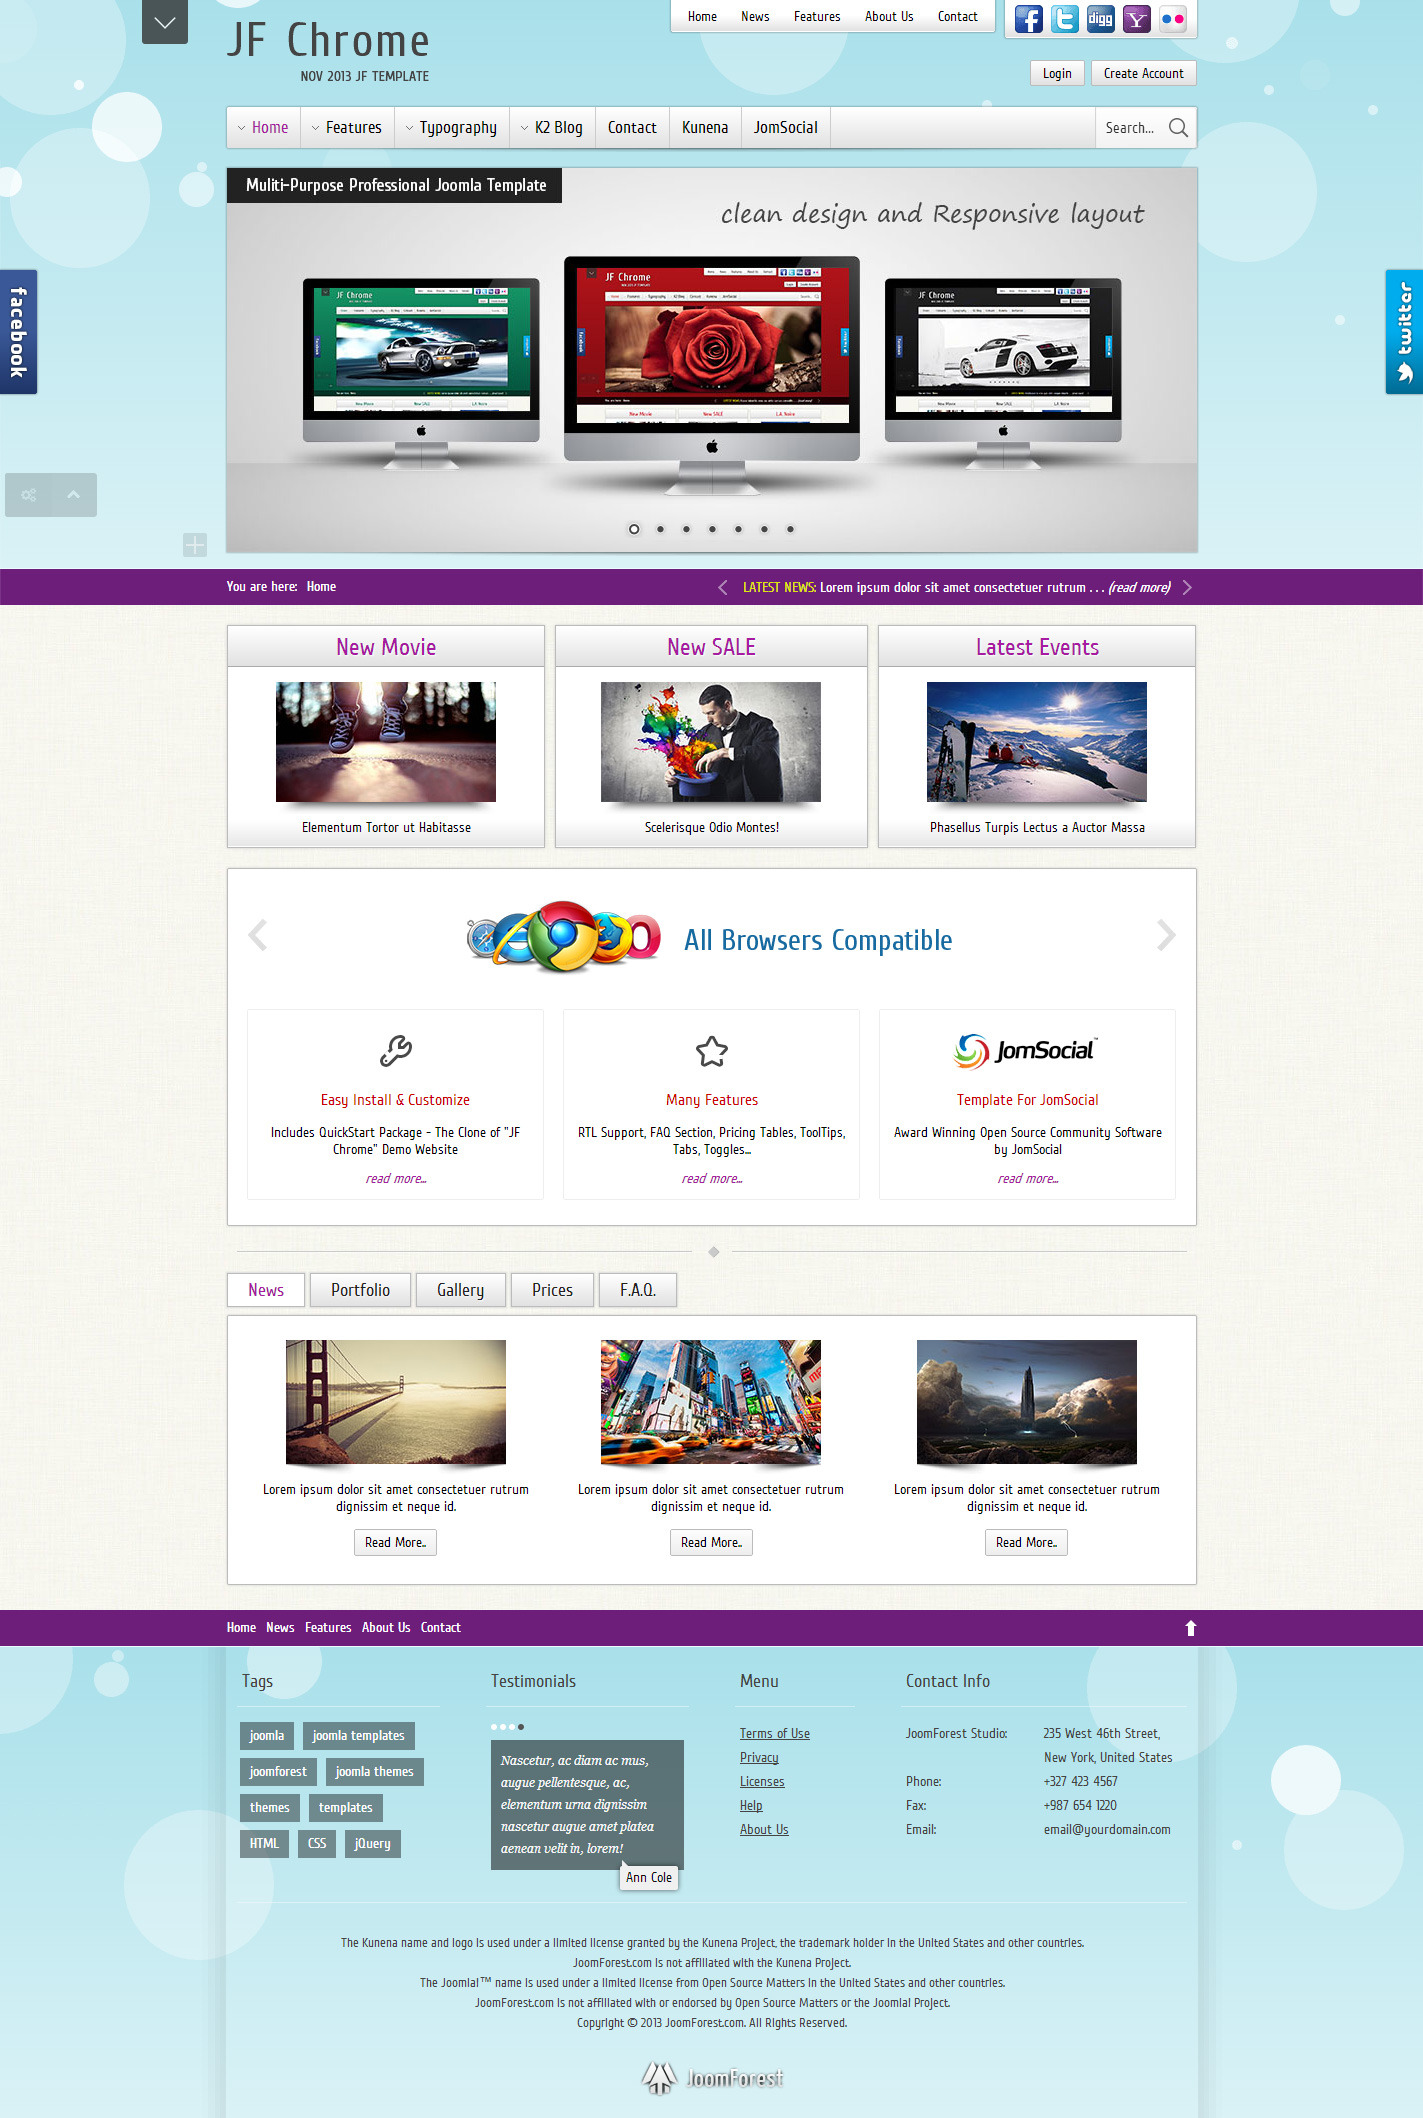 JF Chrome - Joomla Kunena JomSocial Template - JF Chrome - Light Skin